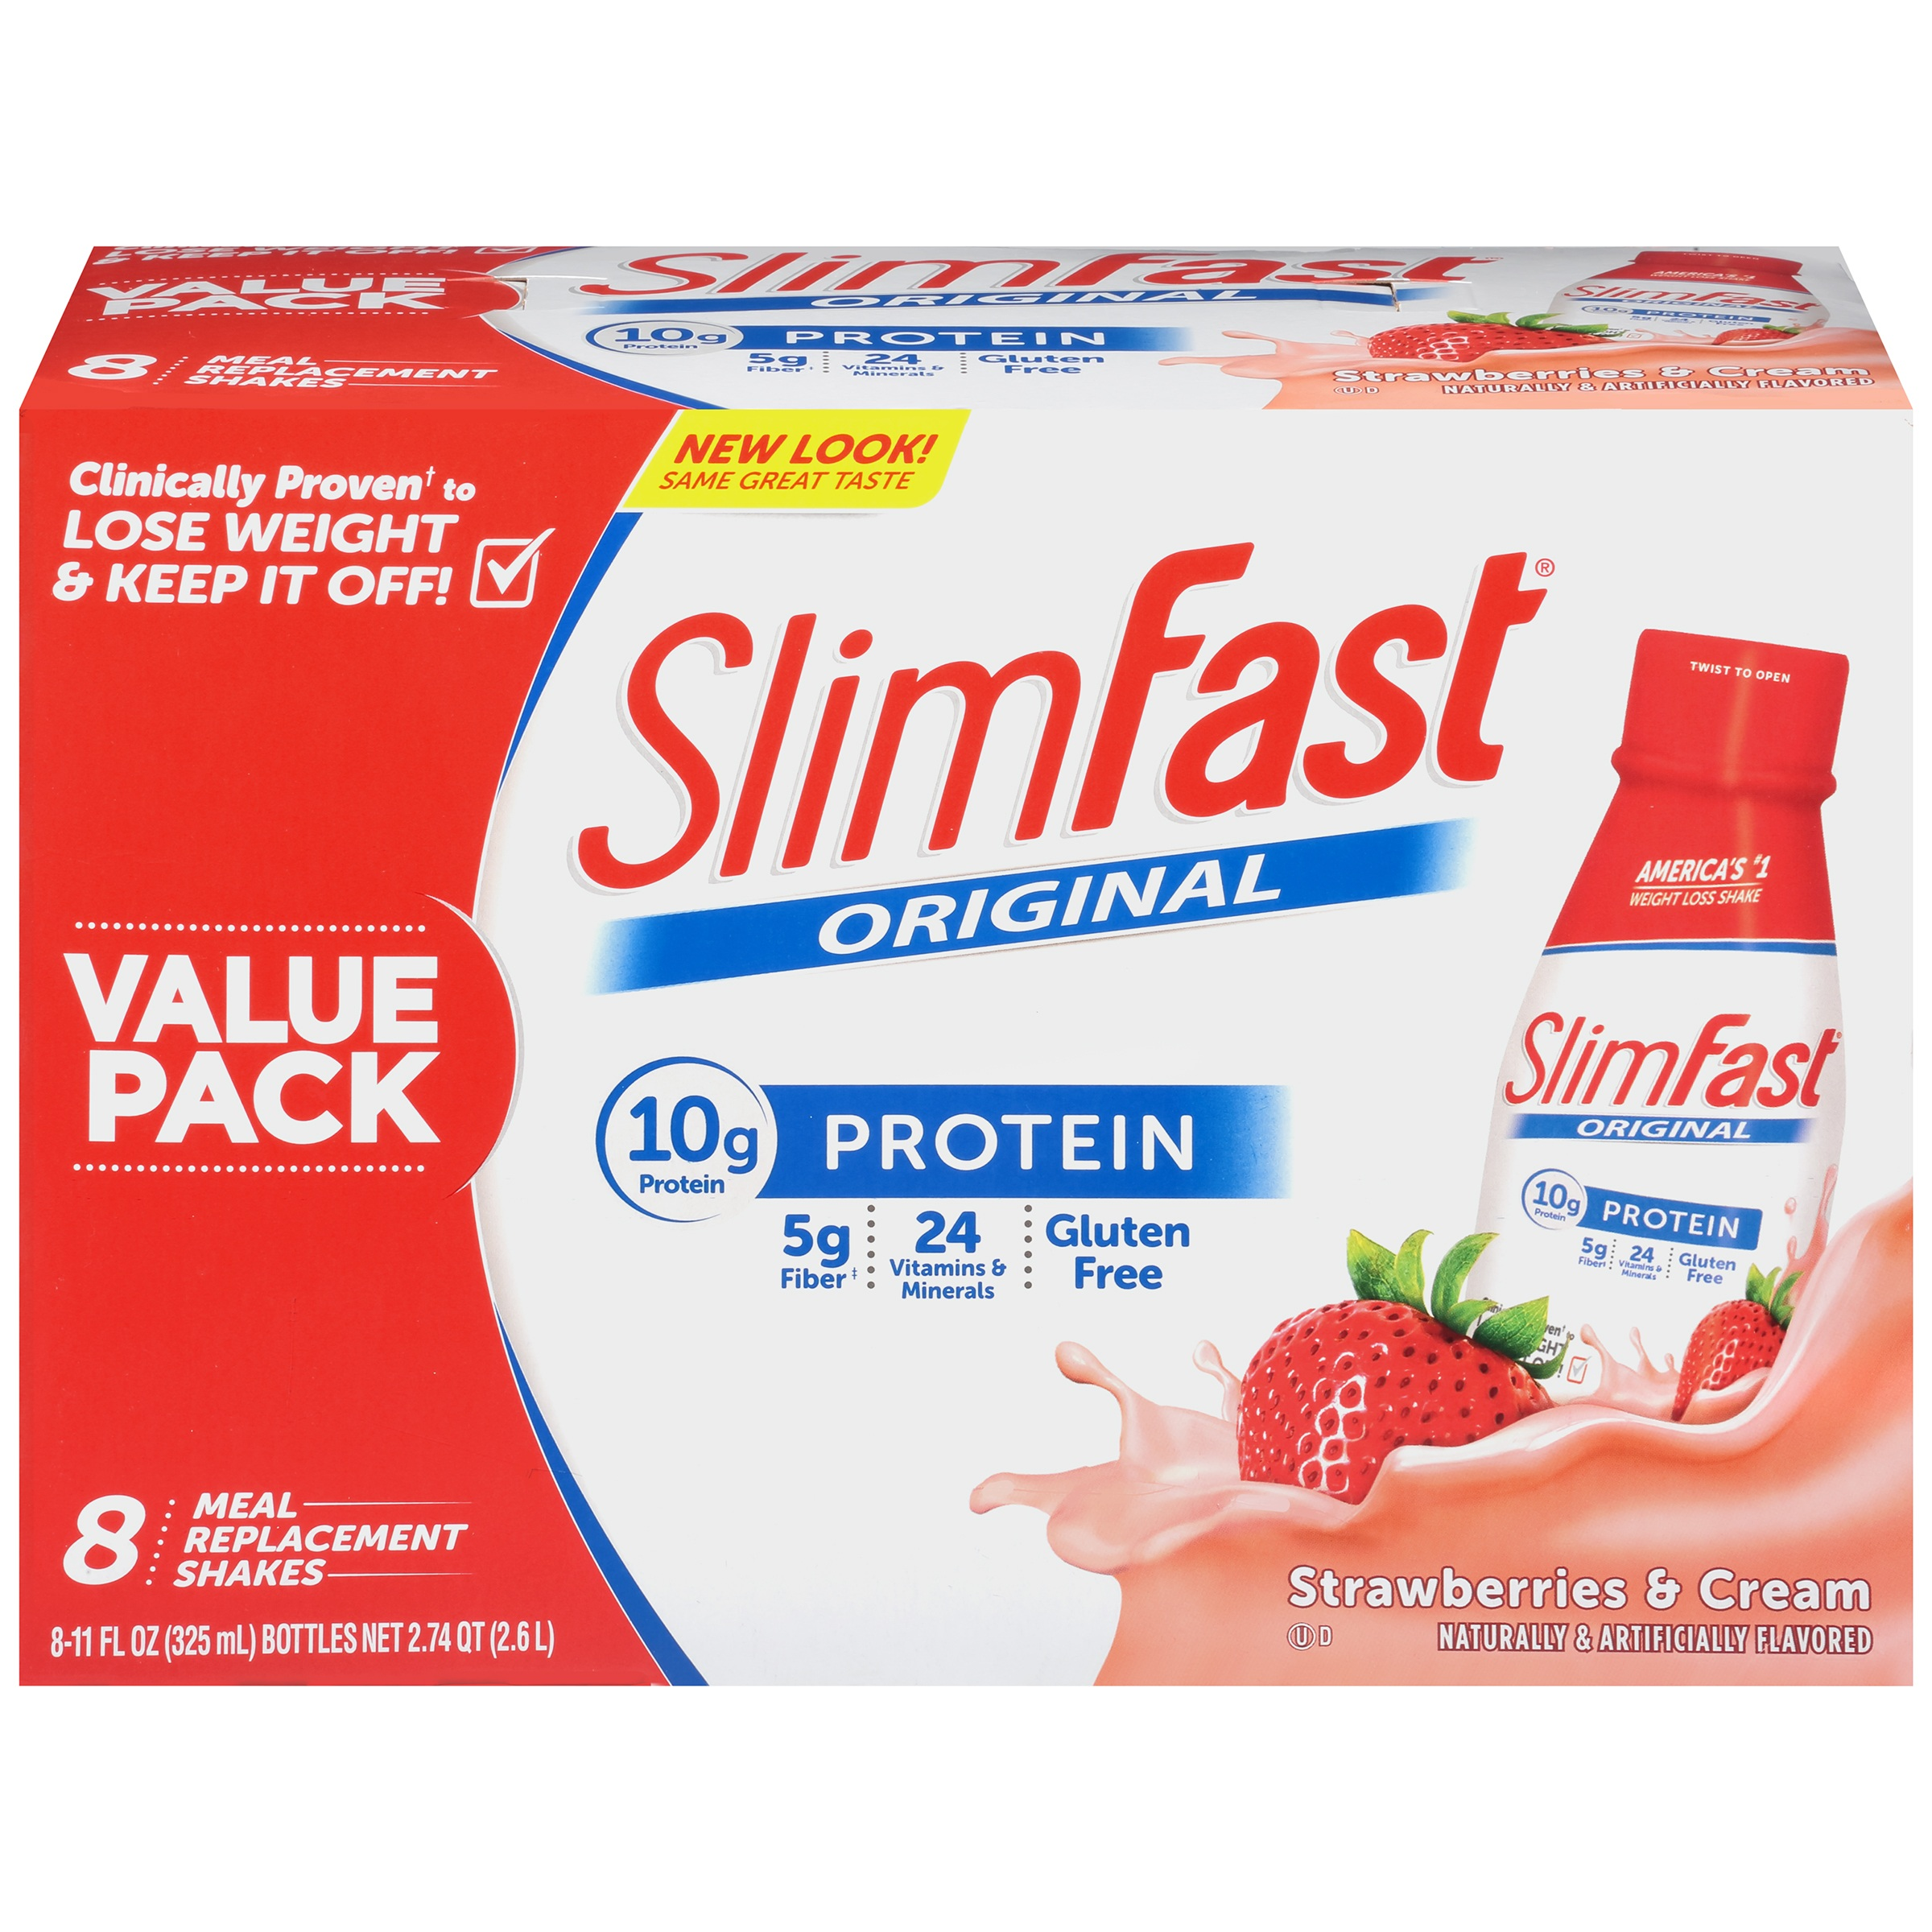 SlimFast Original Meal Replacement Shakes, Strawberries and Cream, 11 Fl oz, 8 Ct